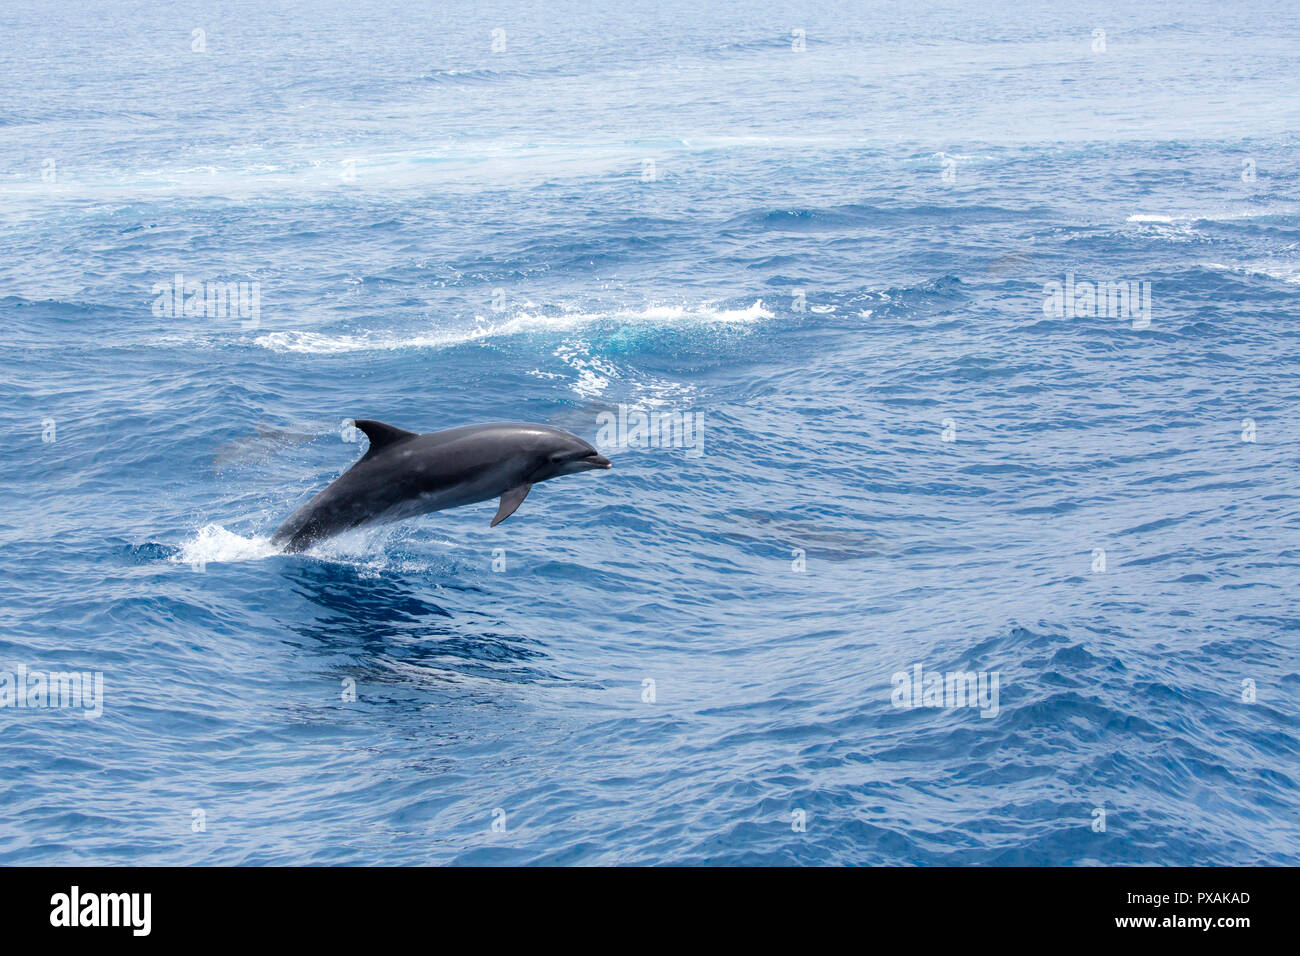 Bottlenose Dolphin (Tursiops truncates) breaching freely off the port of Hualien on the east coast of Taiwan, in the Pacific Ocean. - Stock Image